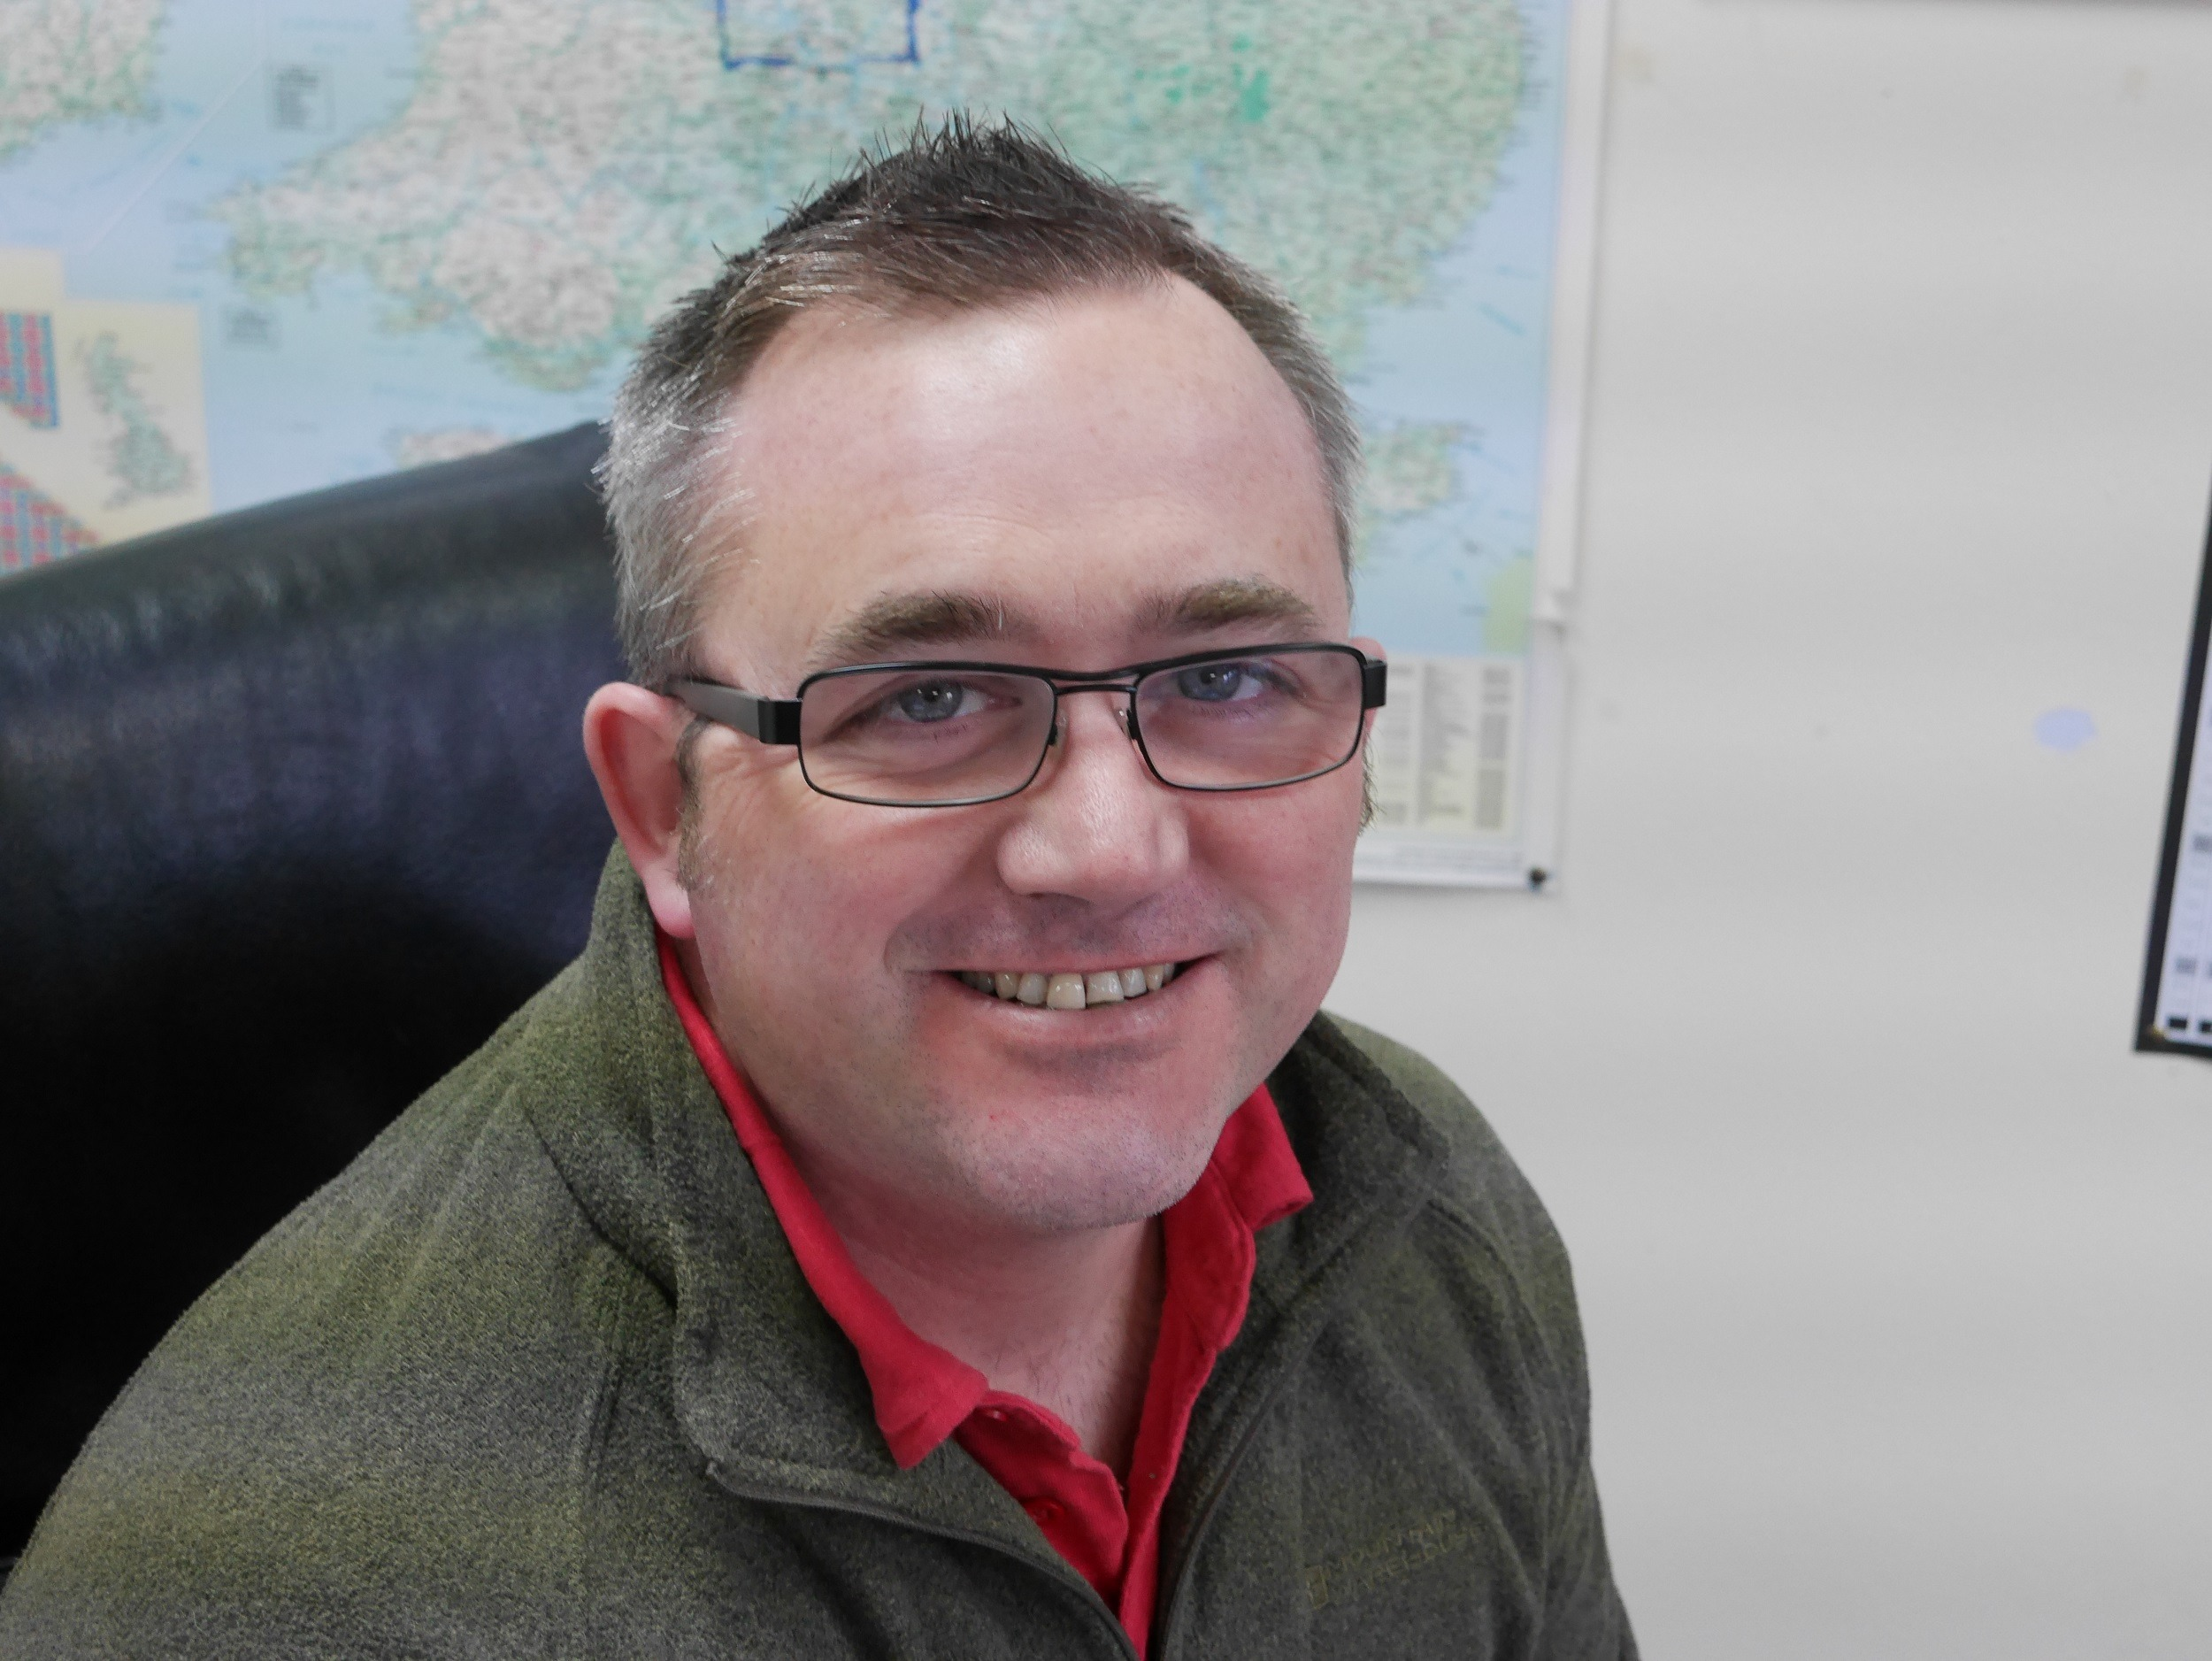 Riverside welcomes new service manager